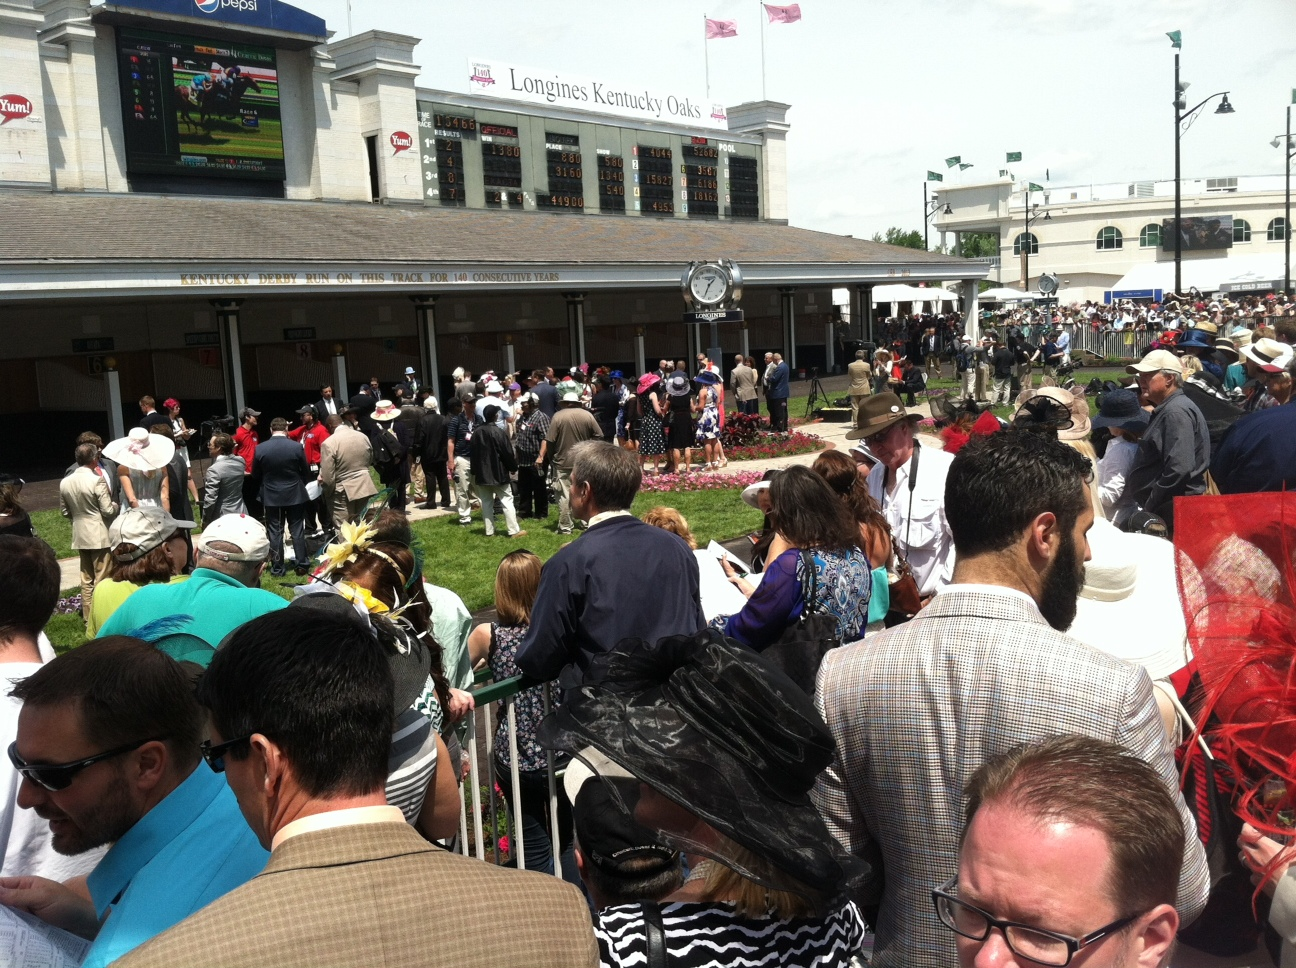 Before races, attendees gather at the stables to check out the horses.